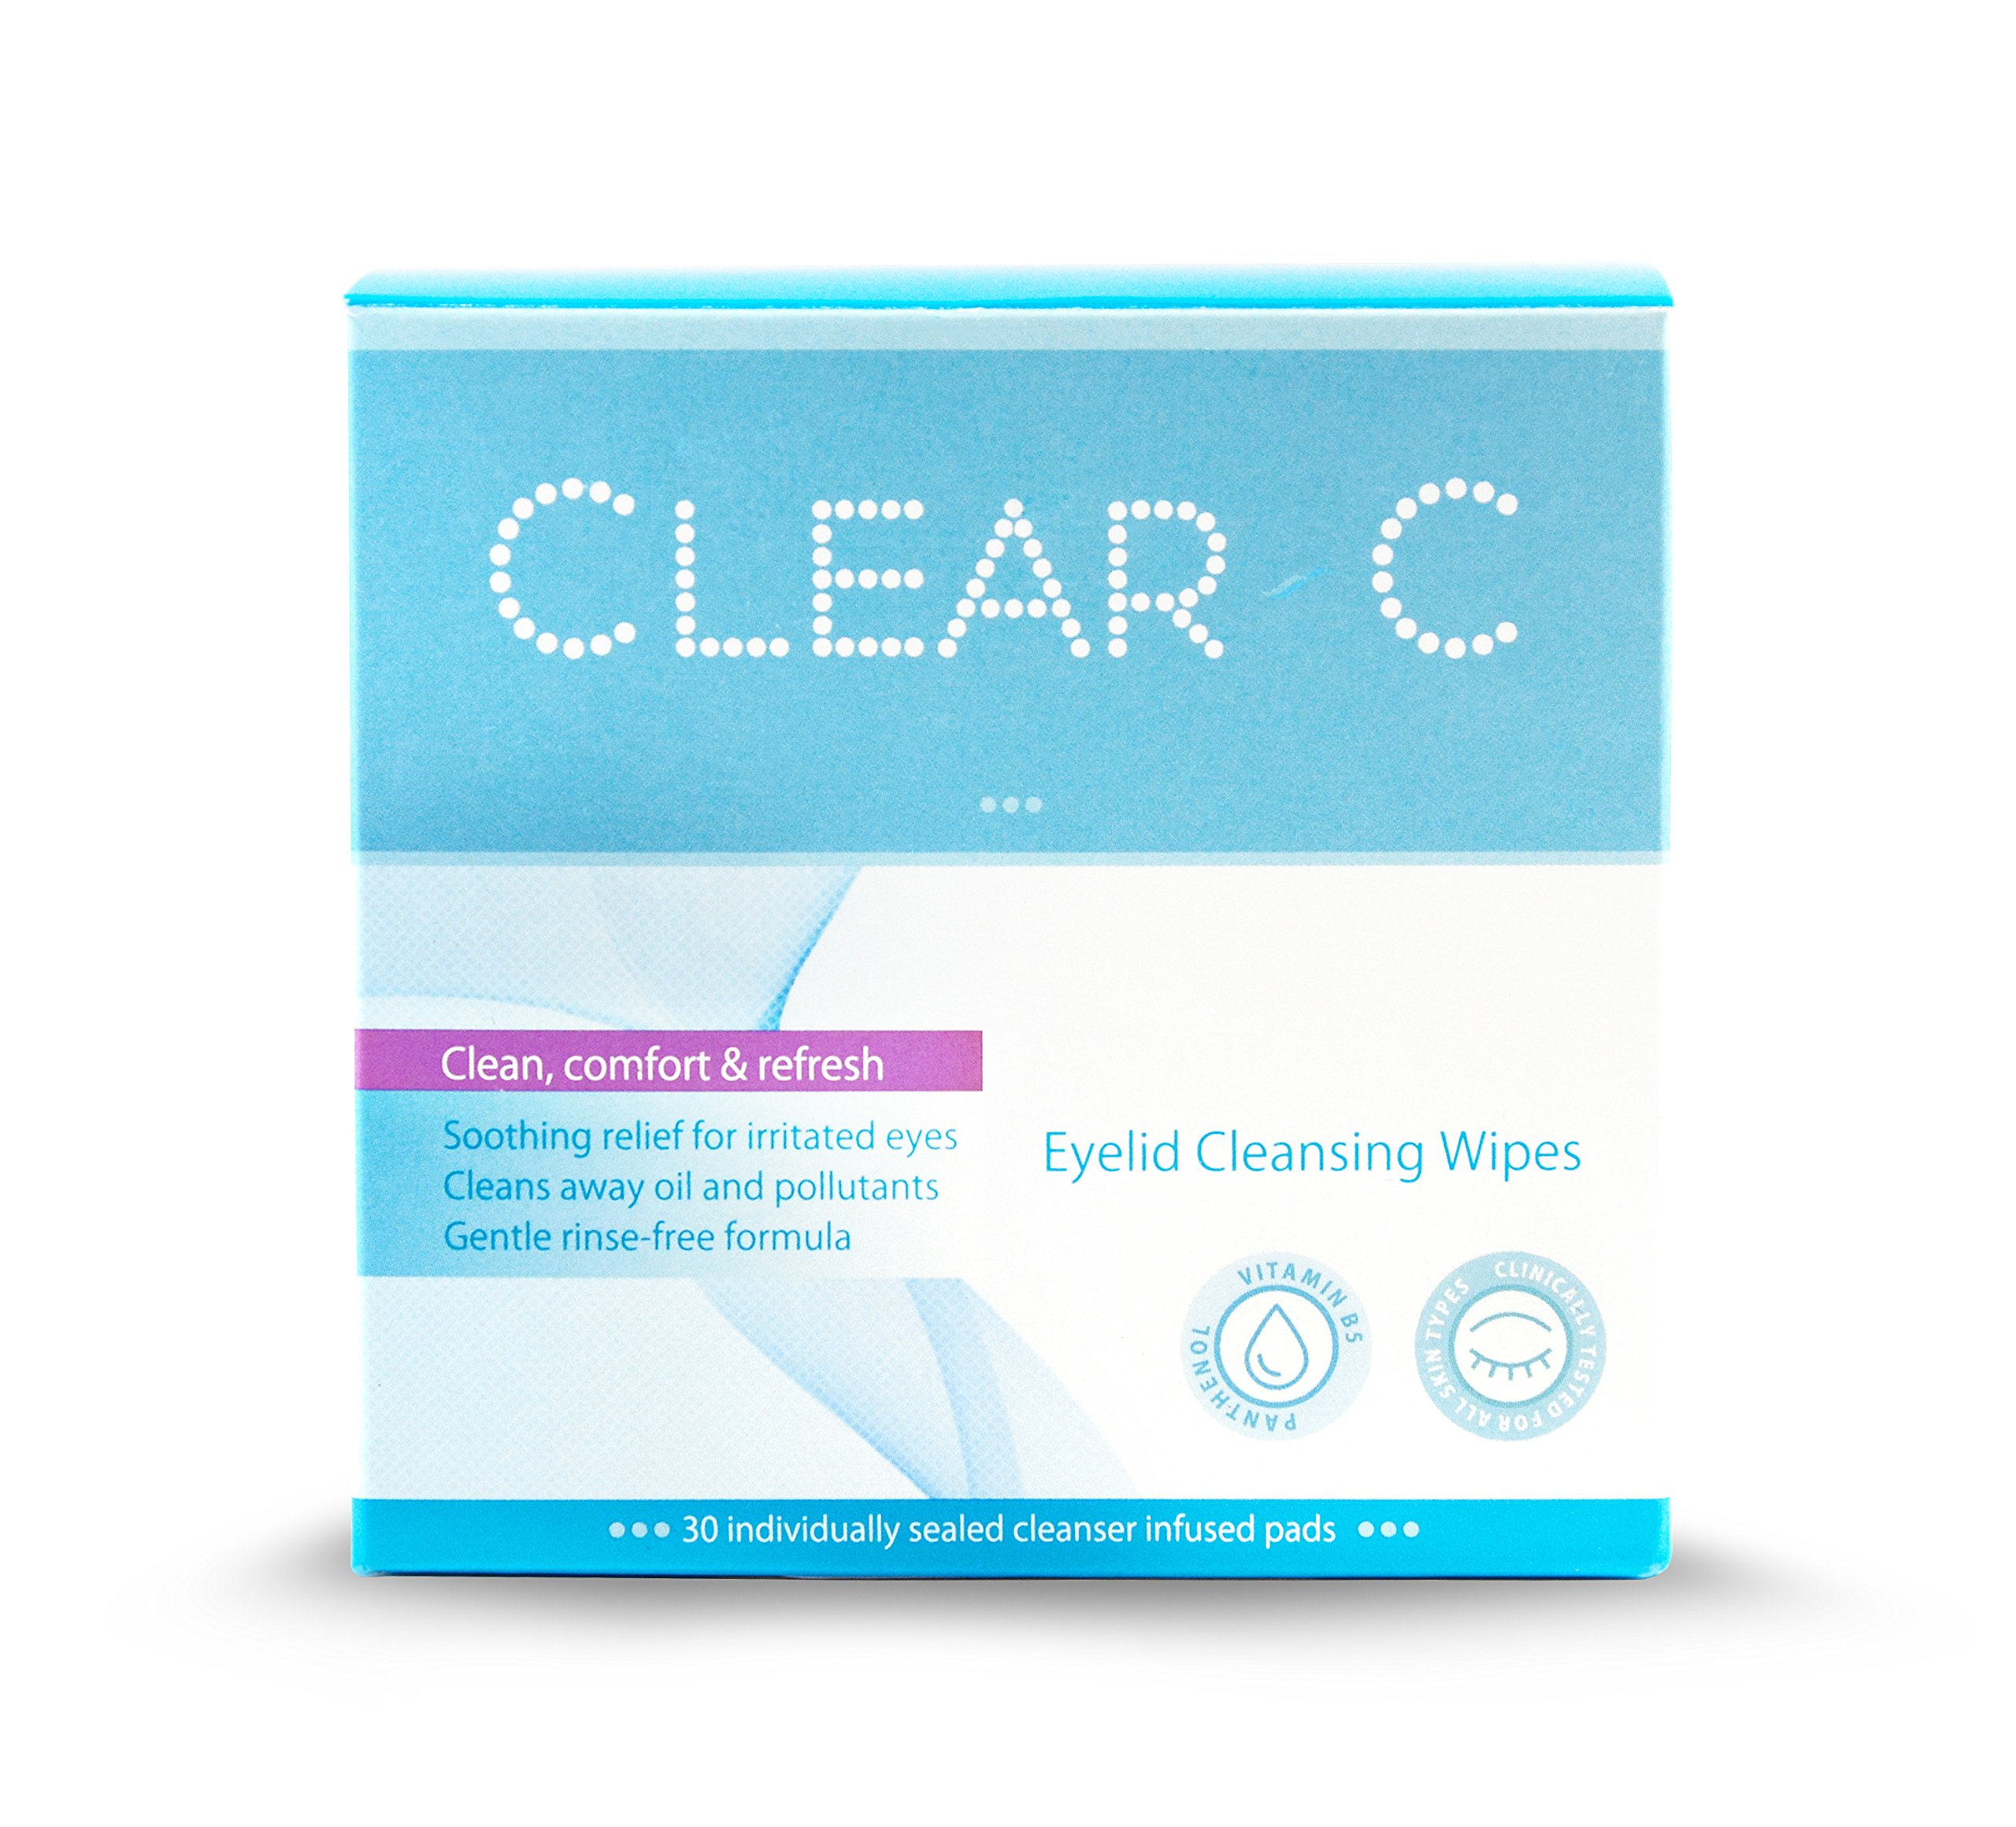 Clear C Premium No Rinse Non Irritating Eyelid Wipes 30 count - Pre-moistened Pads for Dry Eyes, Red Eyes, Daily Use. Box of 30 Individually Wrapped Wipes